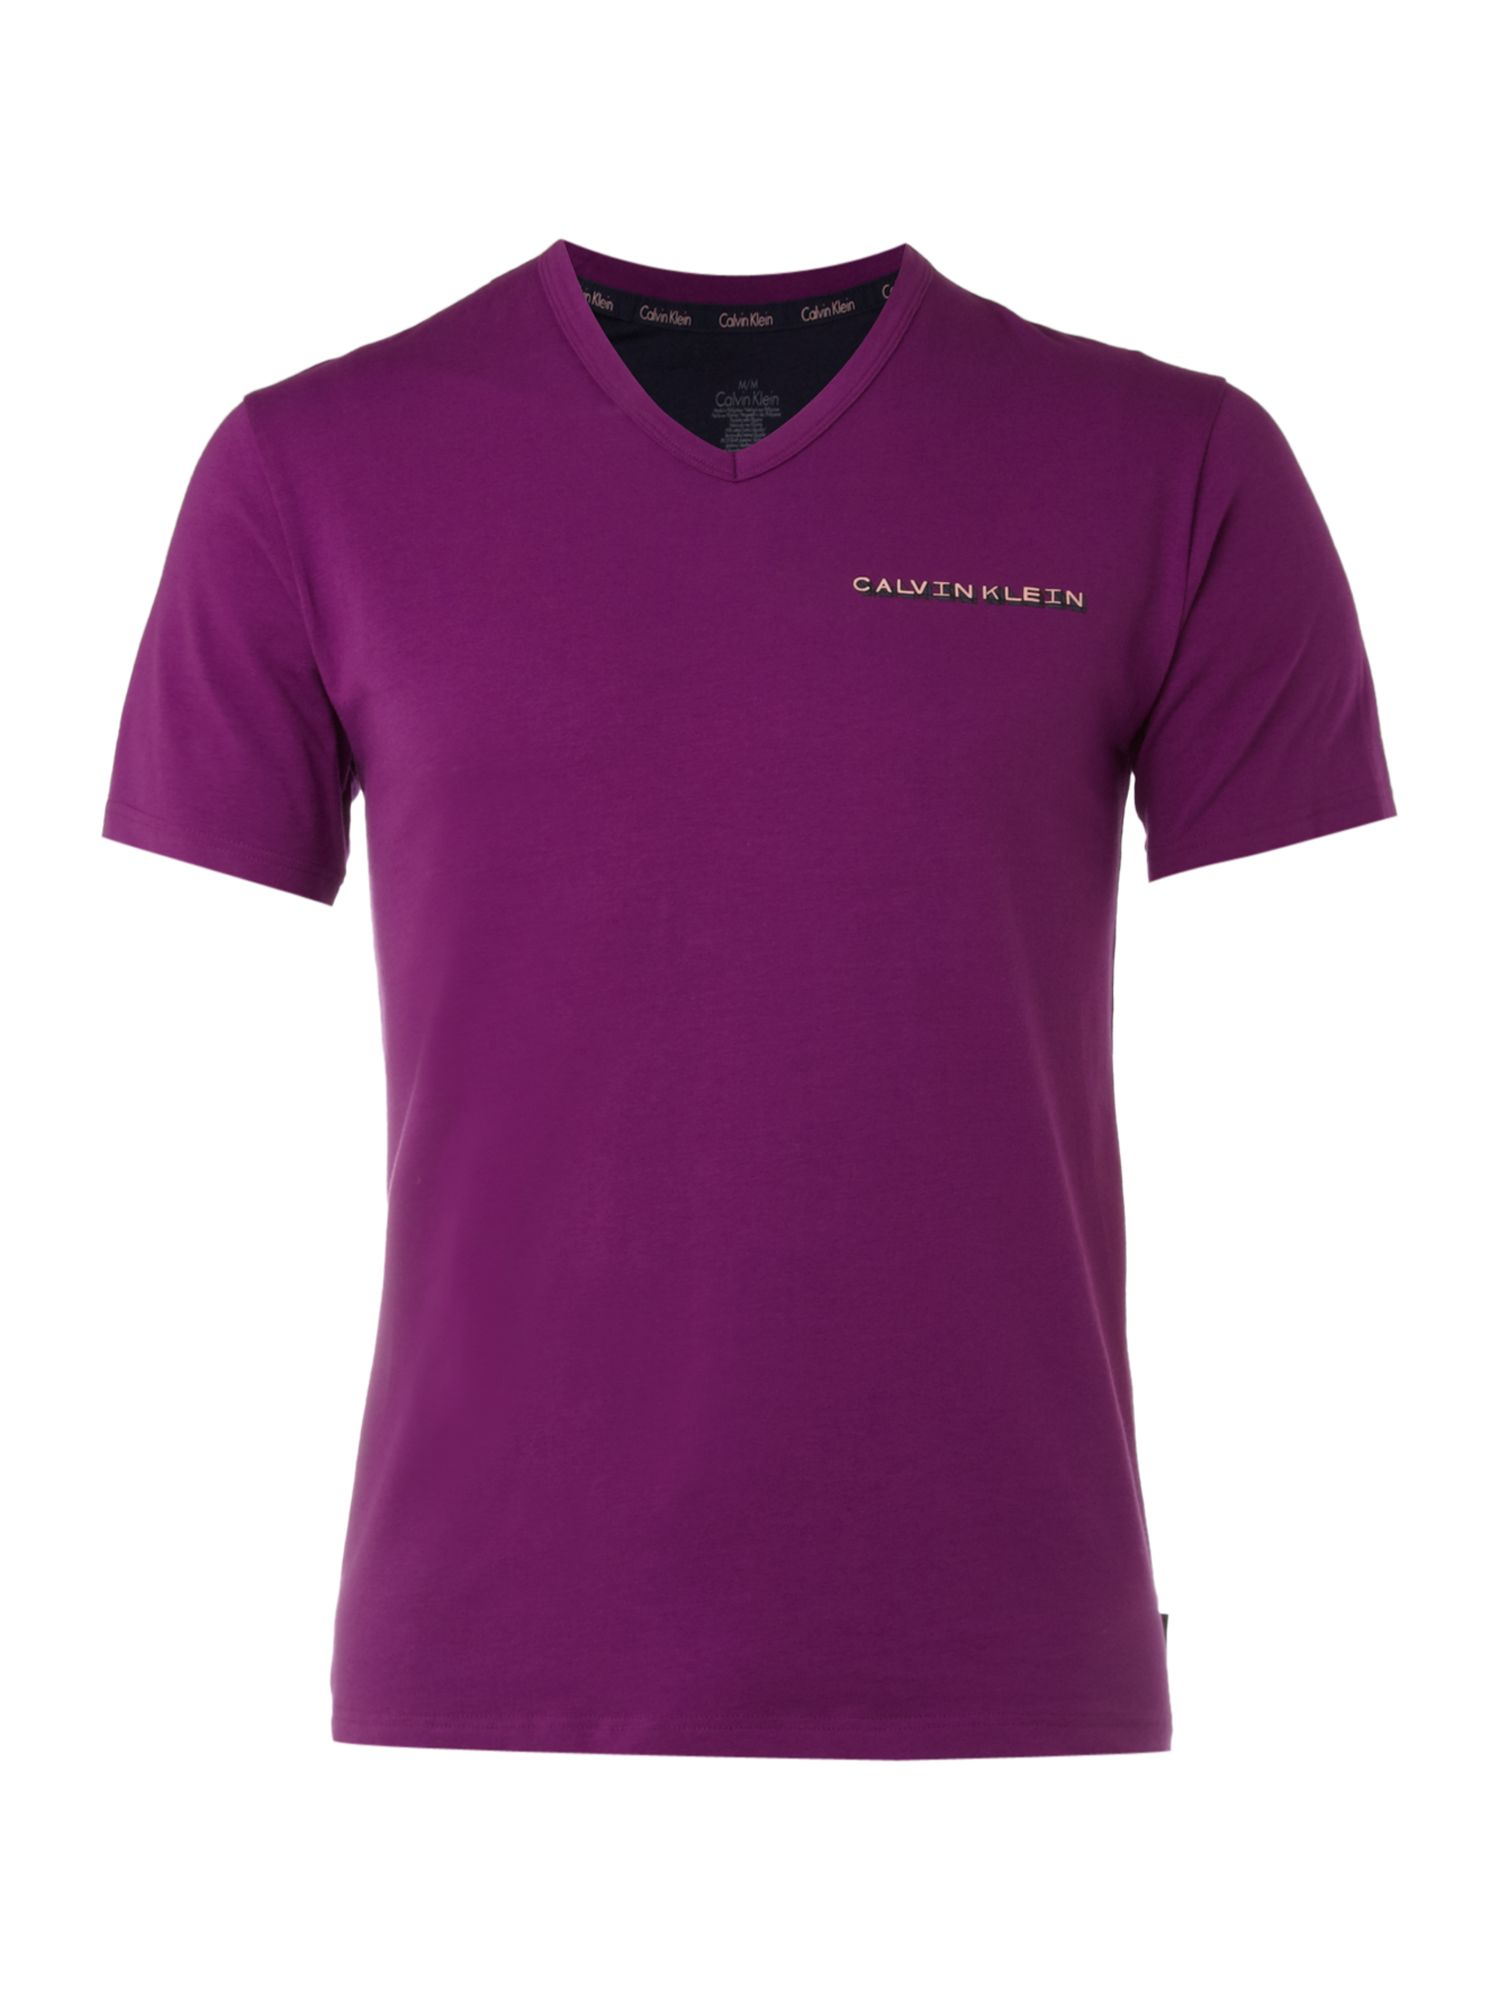 Mens Calvin Klein Vneck t-shirt with logo,